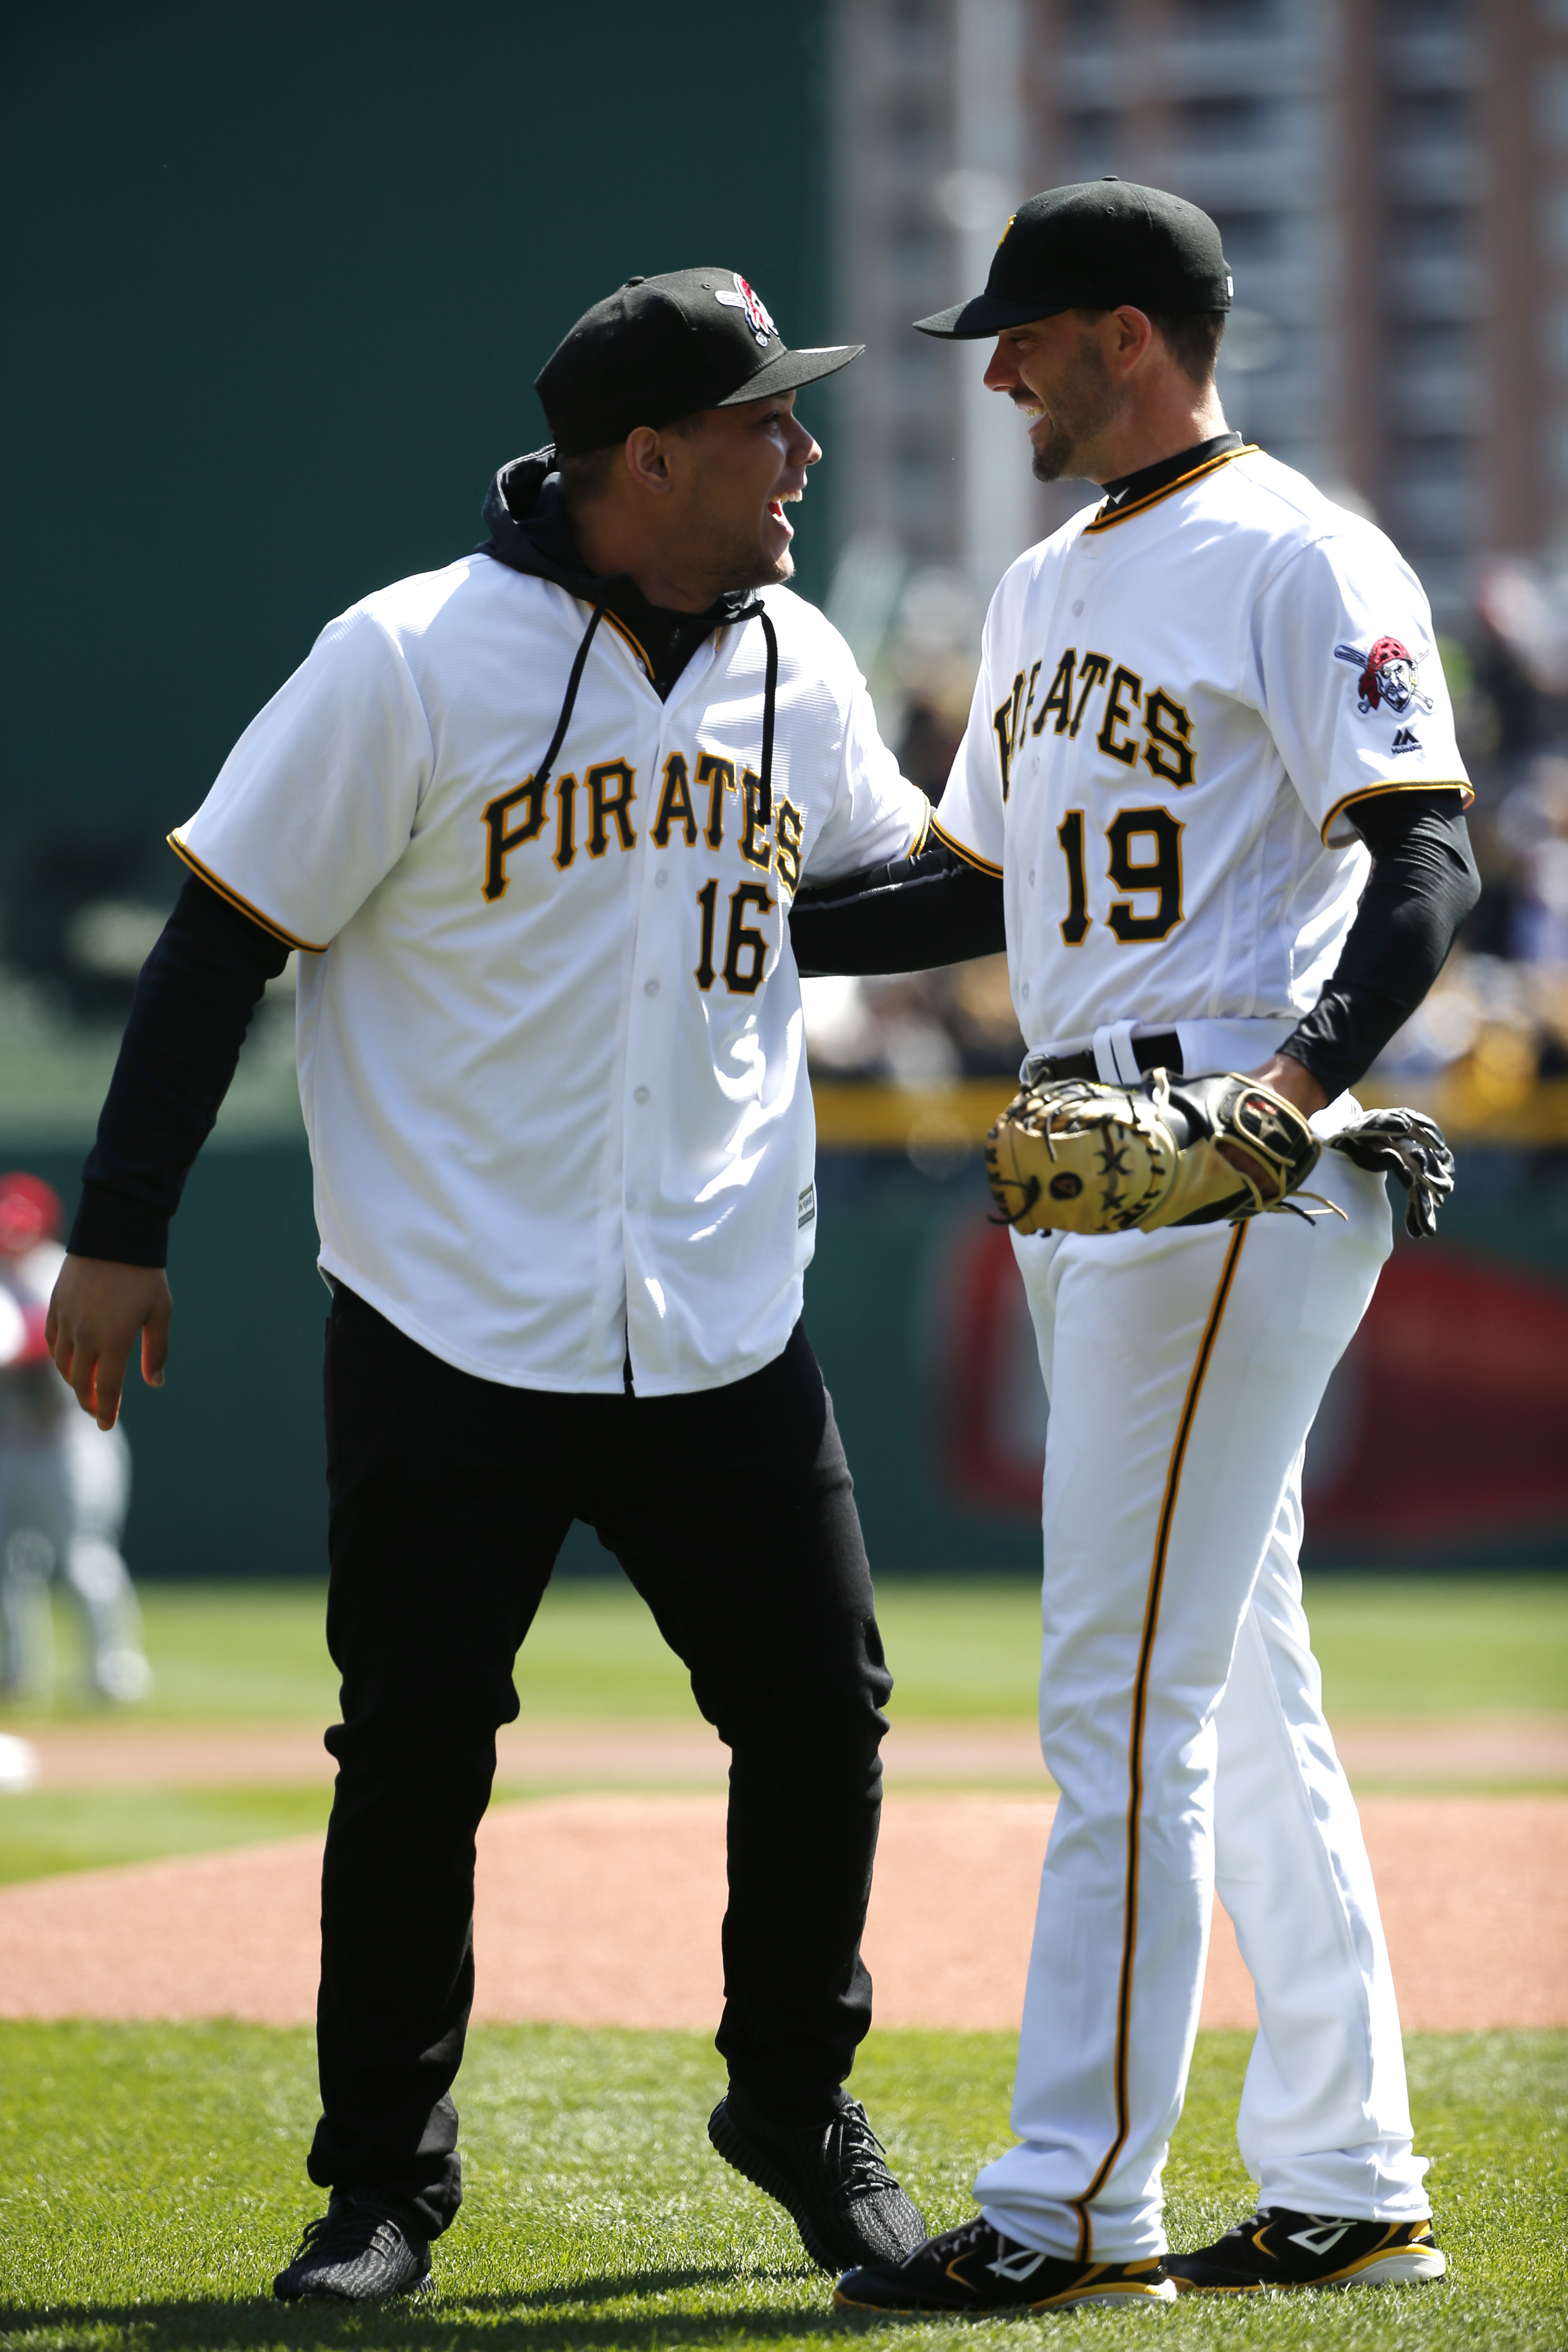 University of Pittsburgh running back James Connor, left, is greeted by Pittsburgh Pirates' Chris Stewart (19) after throwing out the ceremonial first pitch before the first Major League Baseball game of the season between the Pirates and the St. Louis Ca